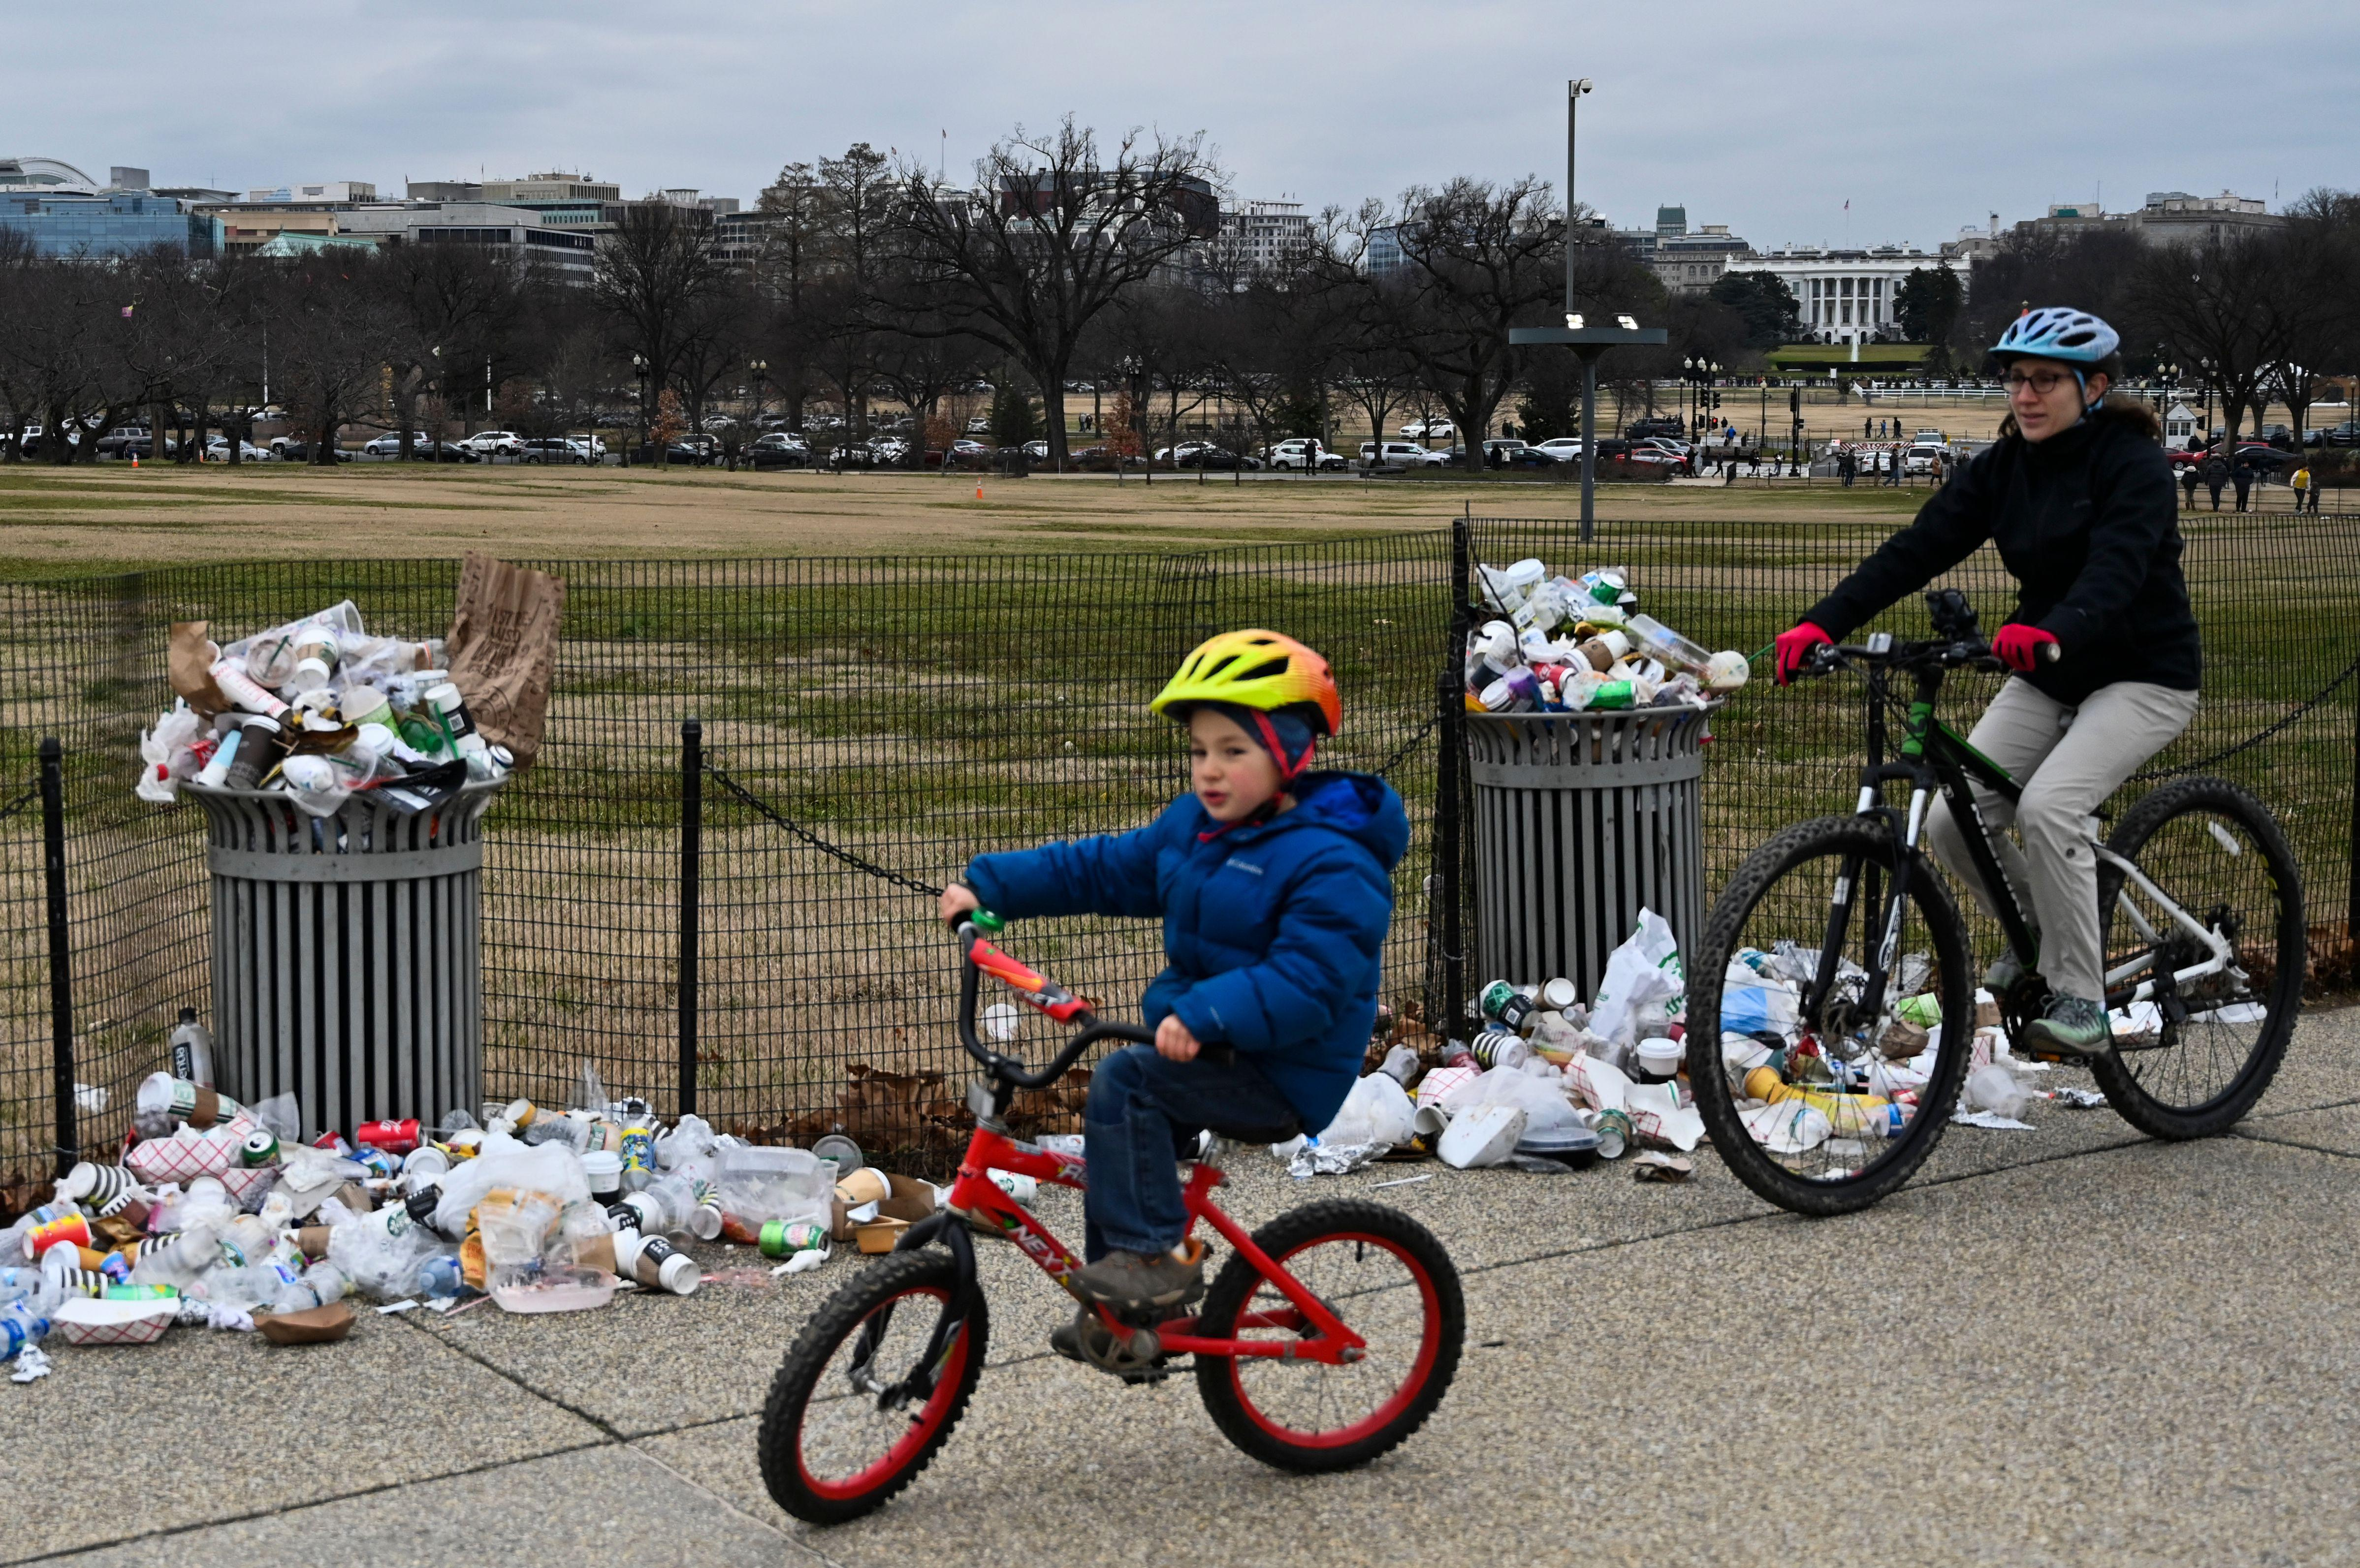 A child and adult on bicycles pass overflowing garbage cans. Behind them, the White House is distantly visible.